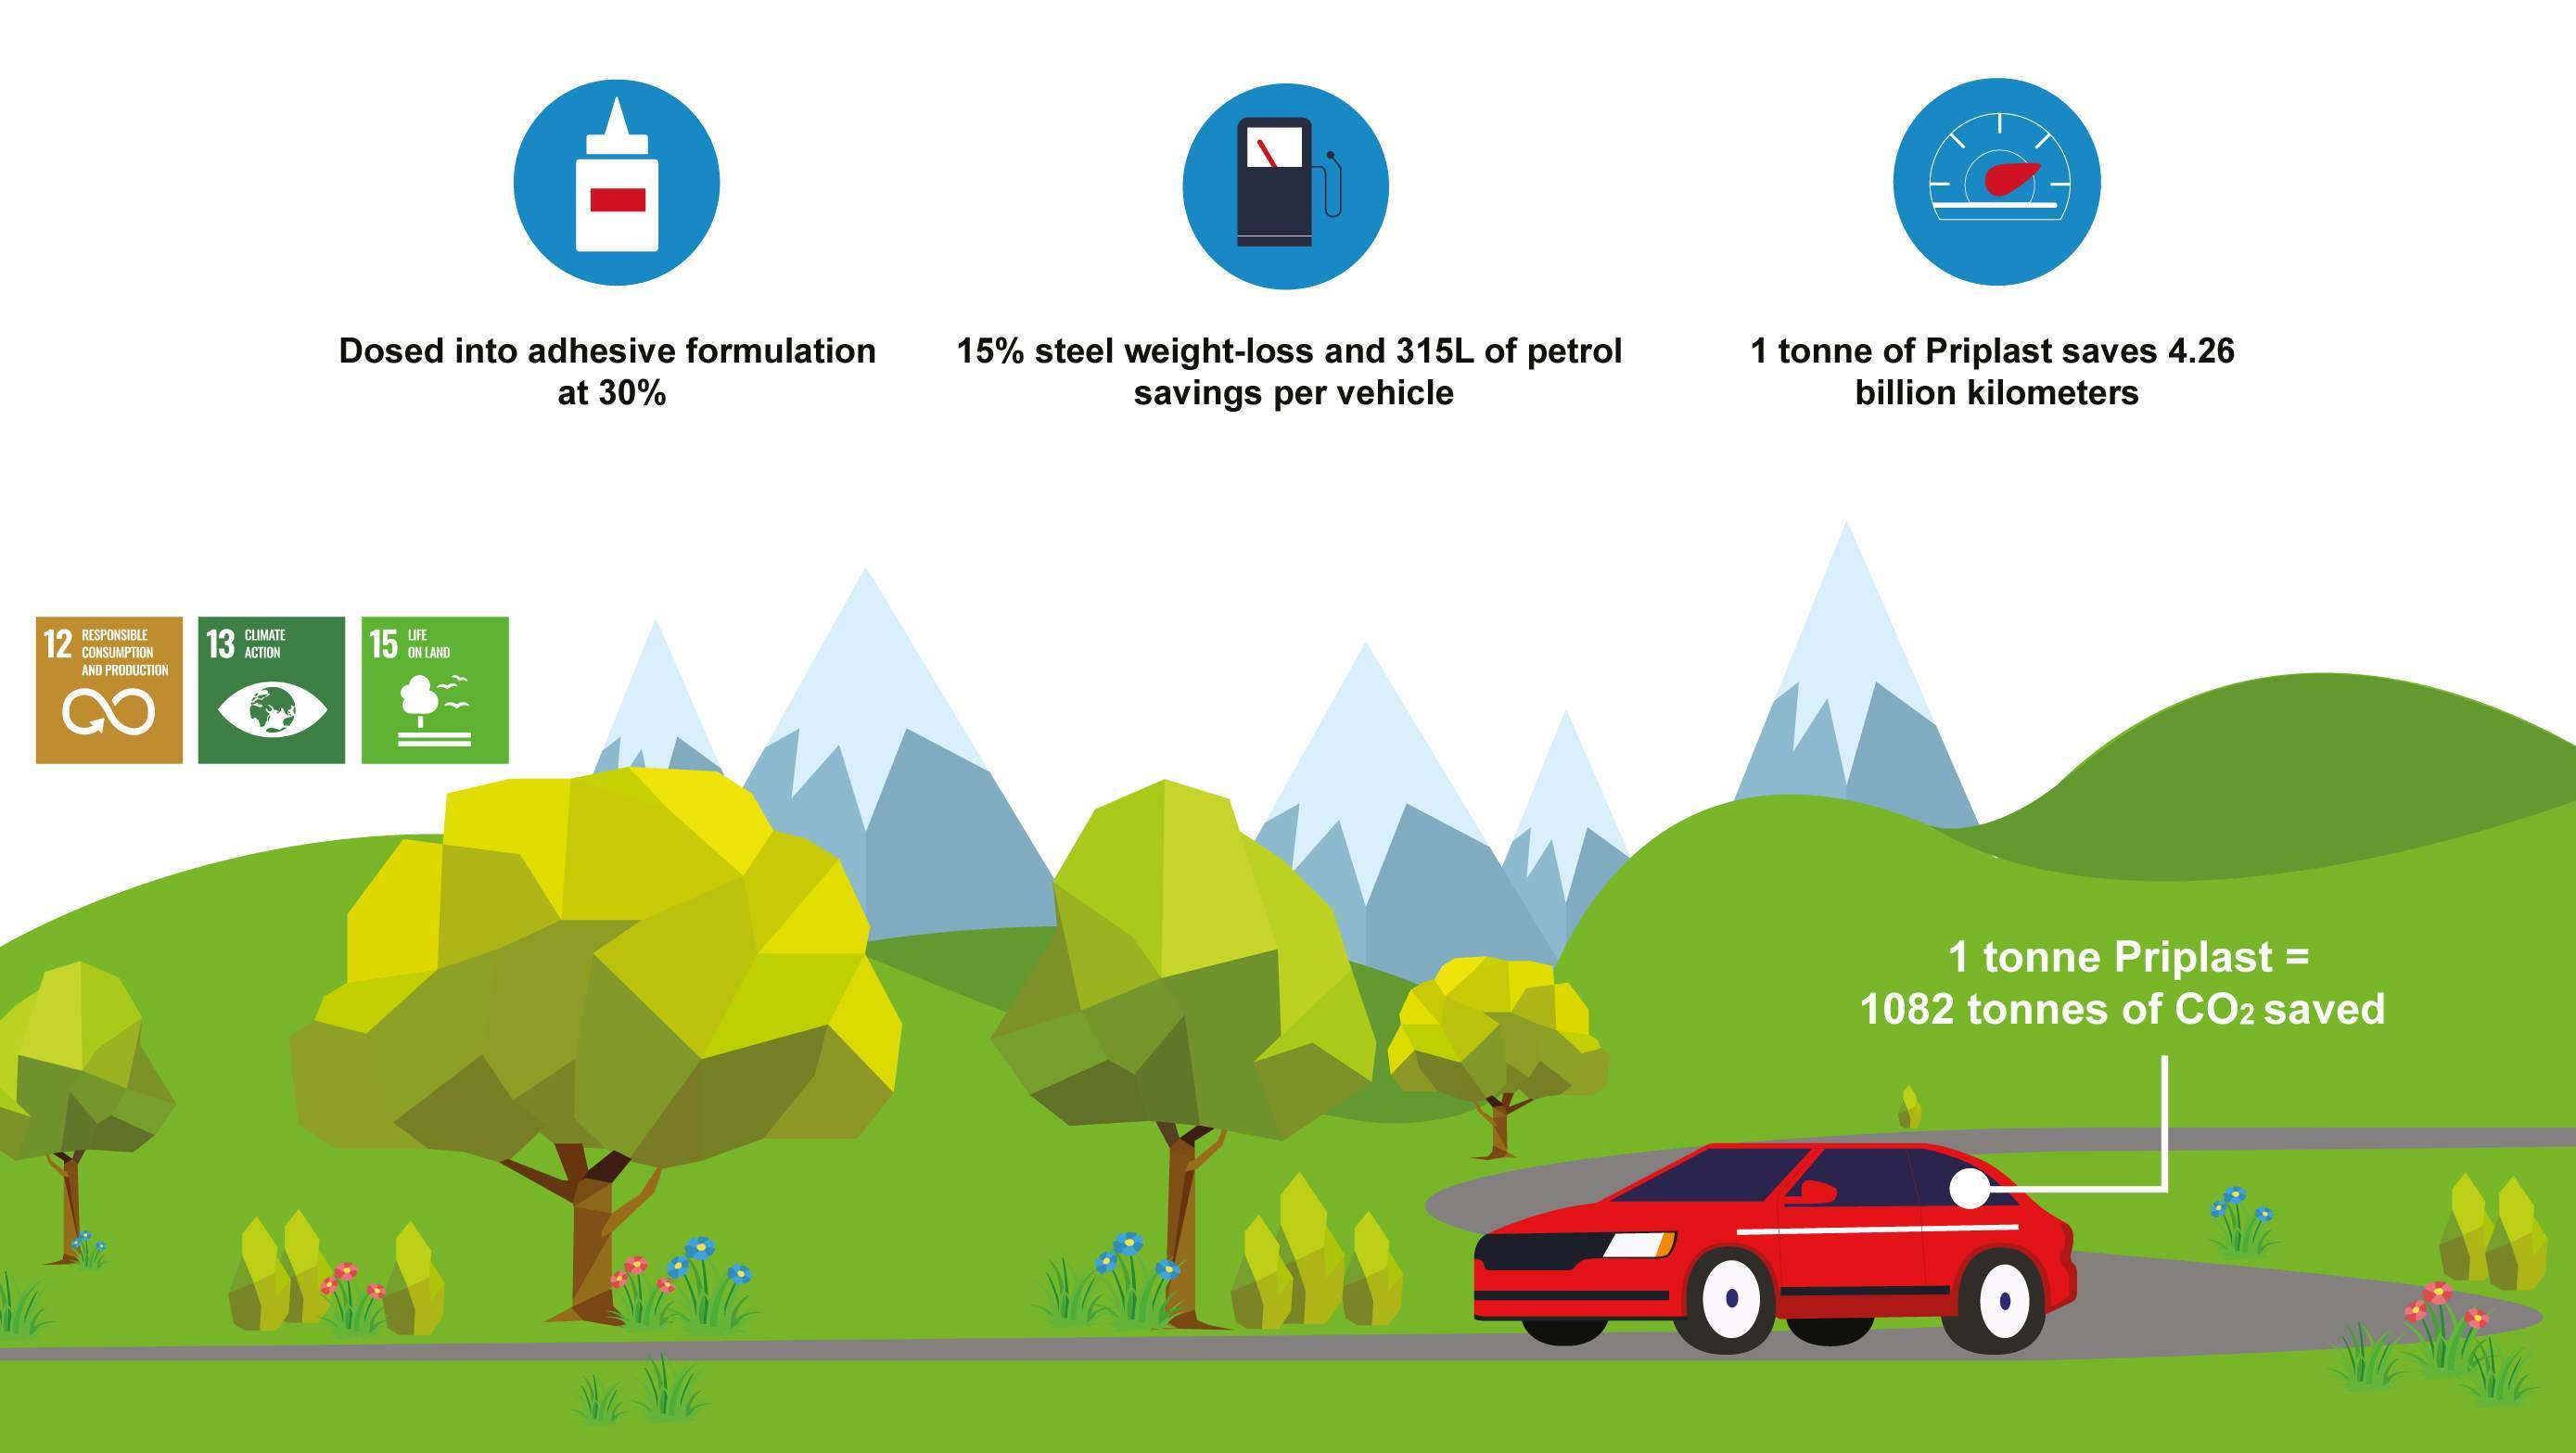 Infographic showing weight and CO2 savings in automotive